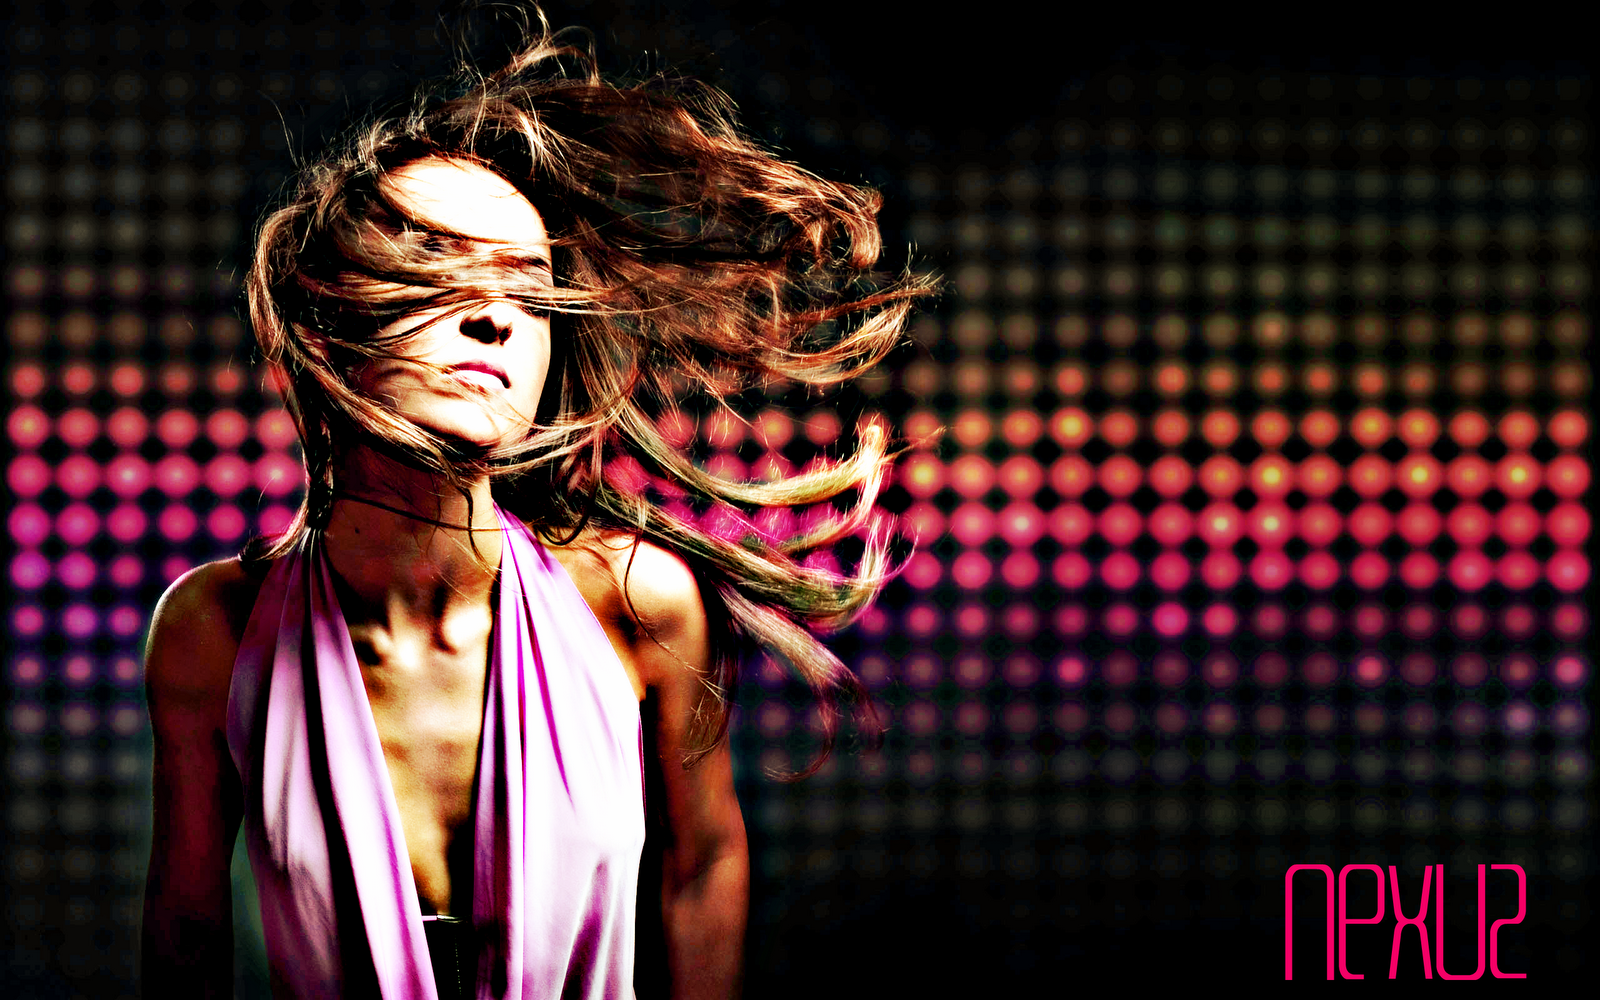 Image gallery for : girl abstract wallpaper